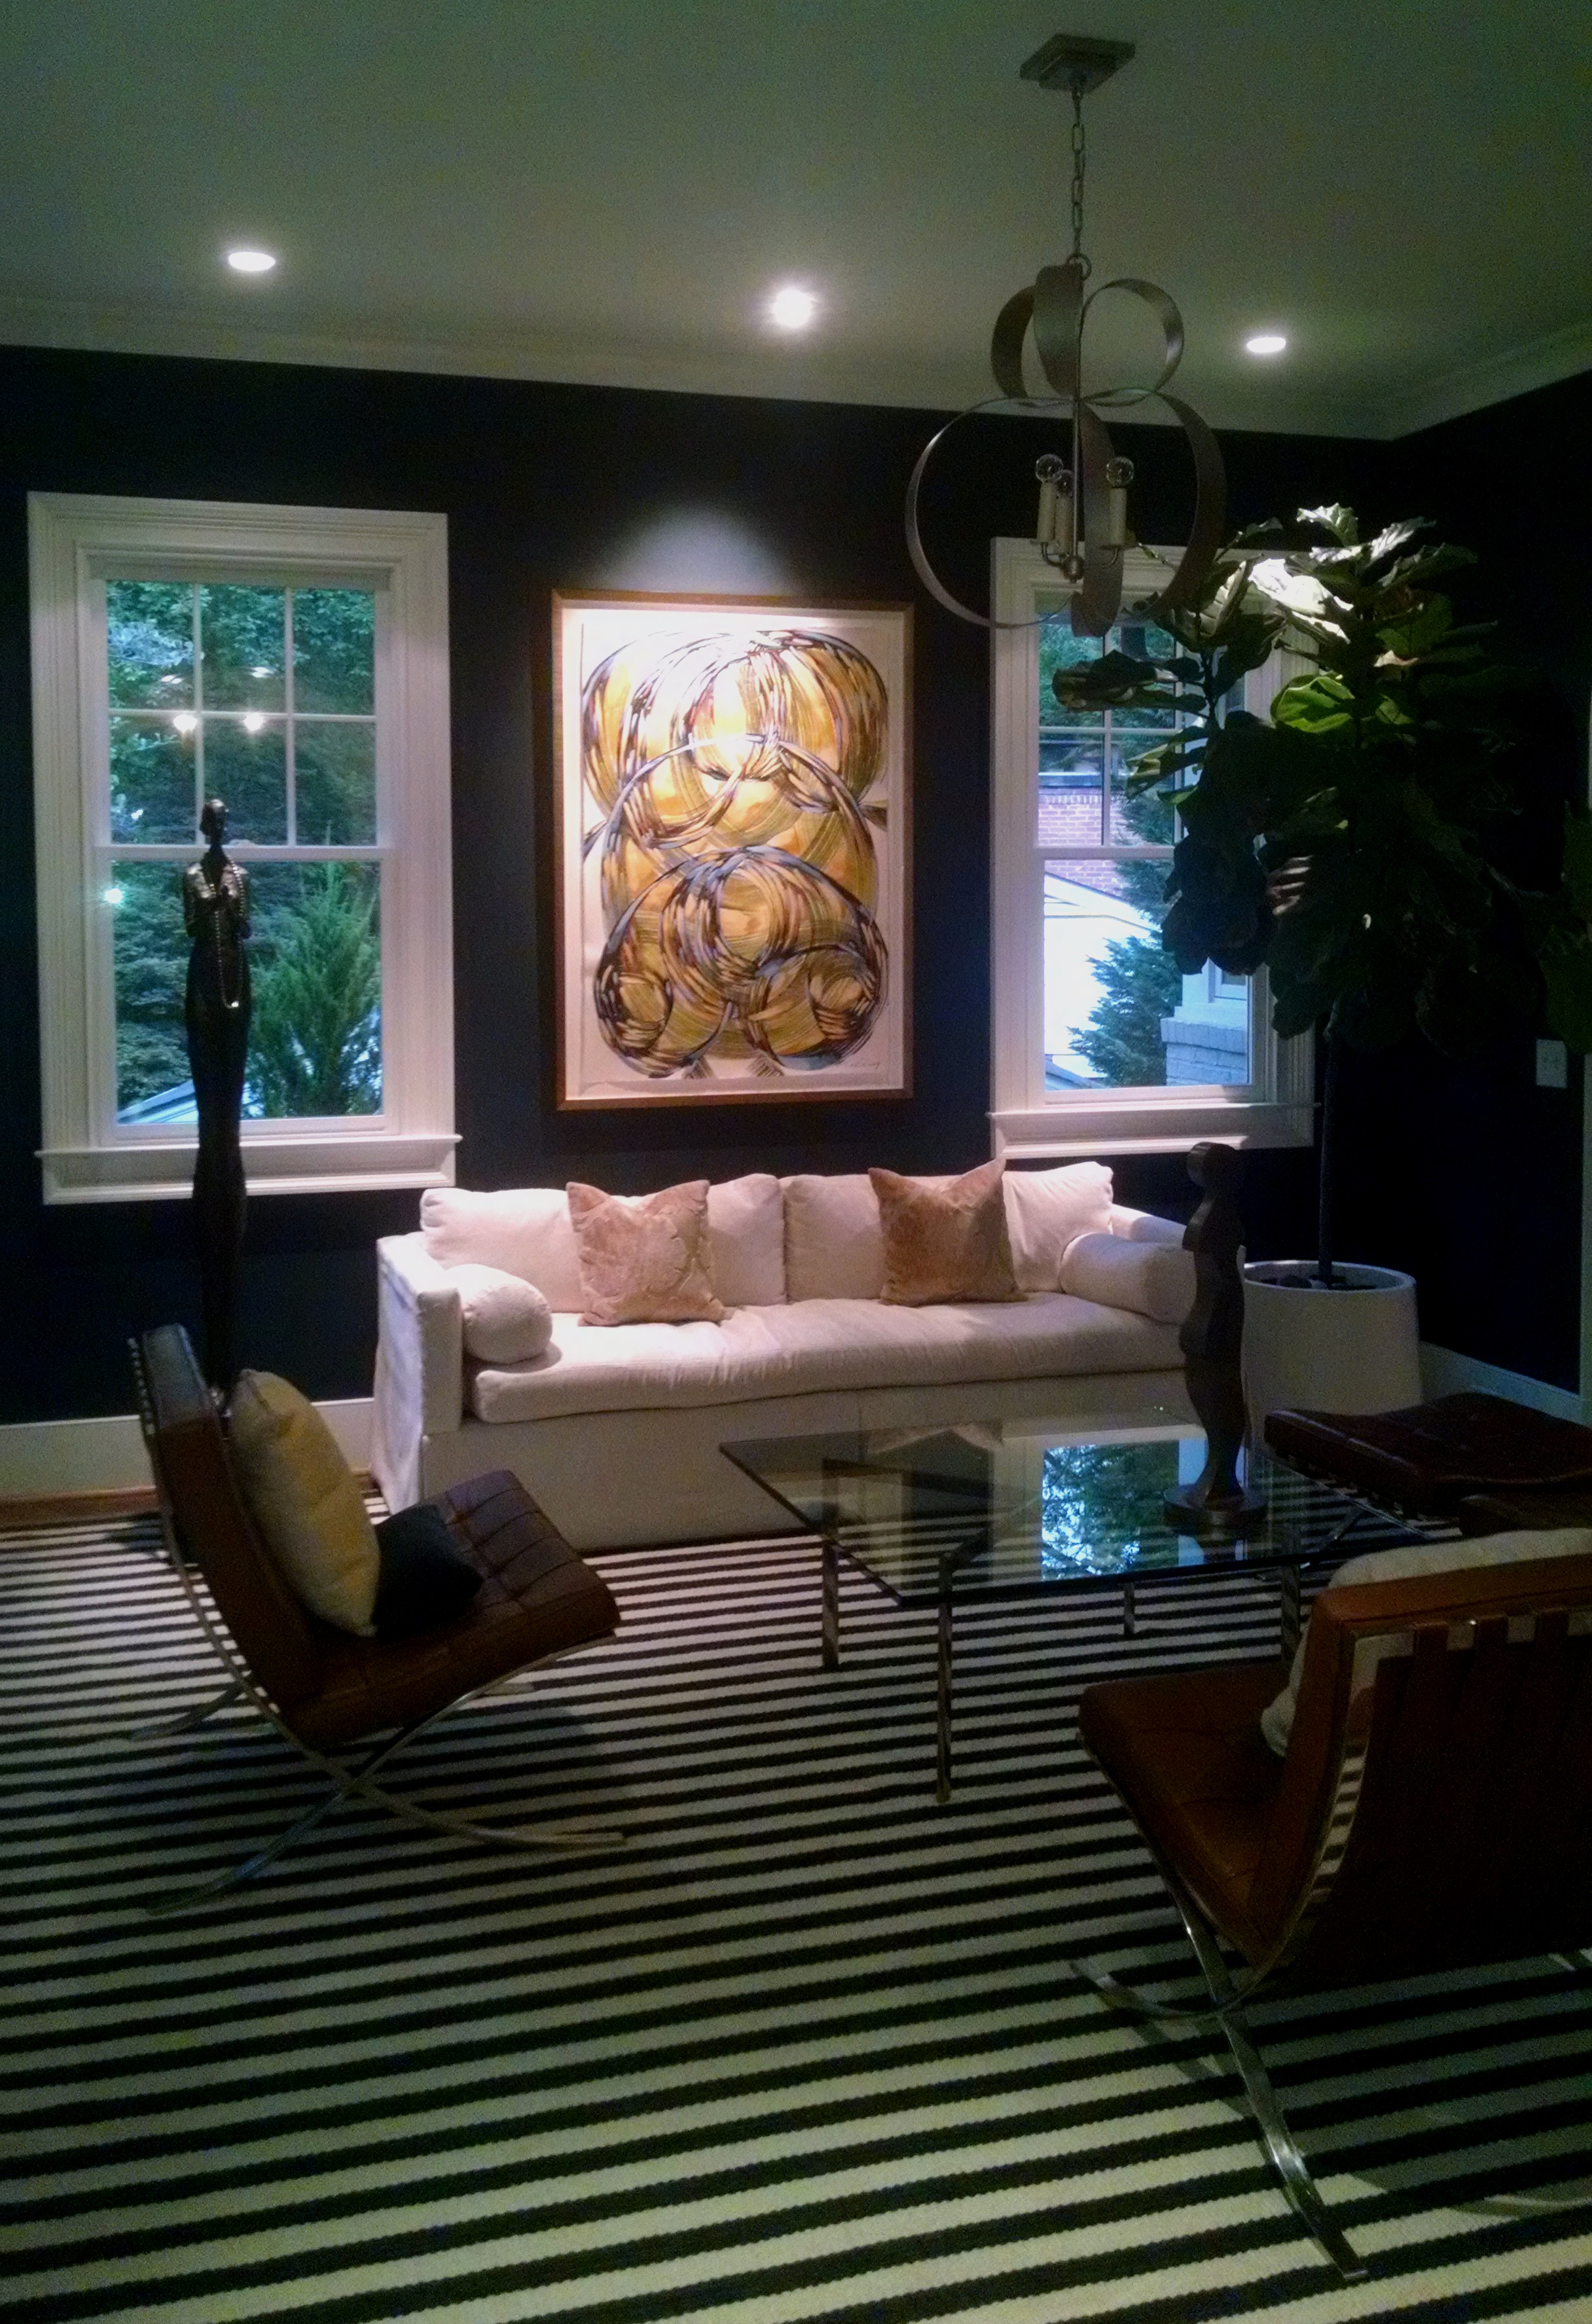 recently installed drawing by amanda talley in atlanta